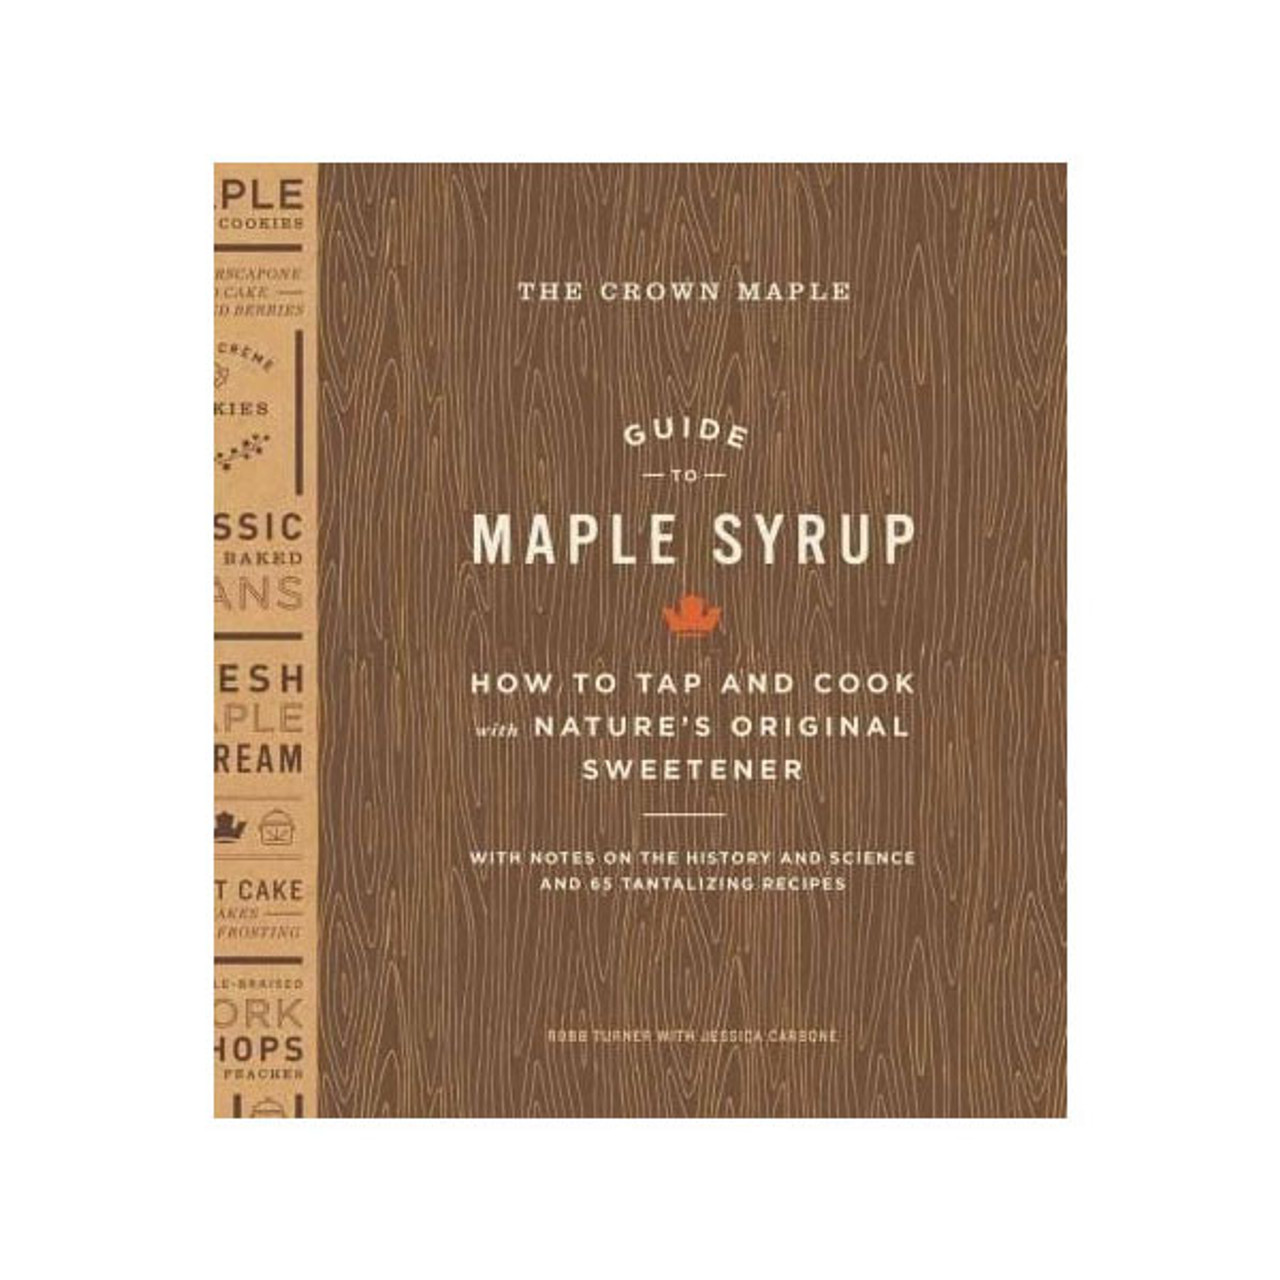 the crown maple guide to maple syrup how to tap and cook with rh crownmaple store a guide to modern politics a guide to modern econometrics pdf